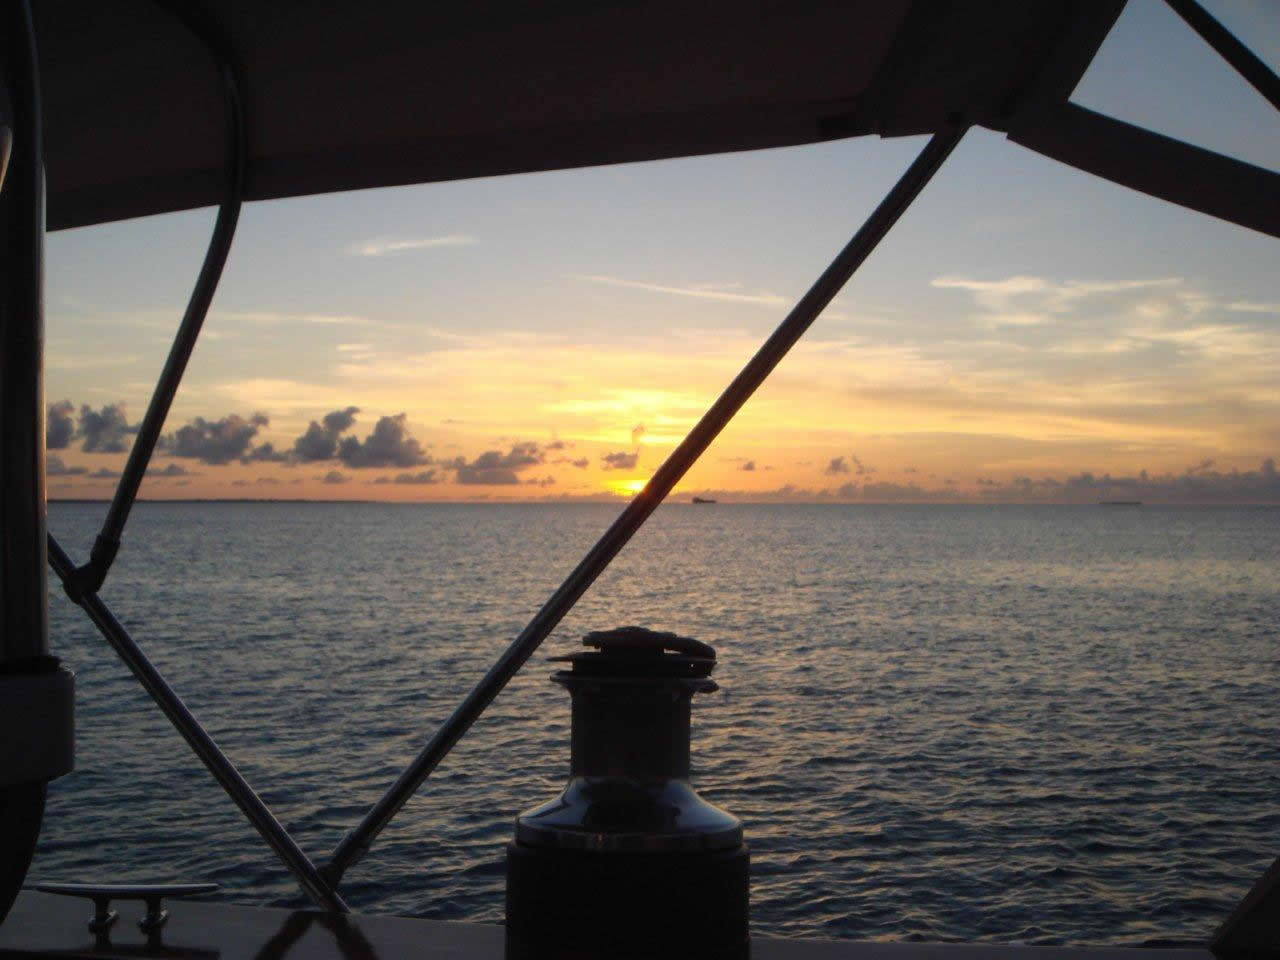 sunset over the winch - ship/crew page